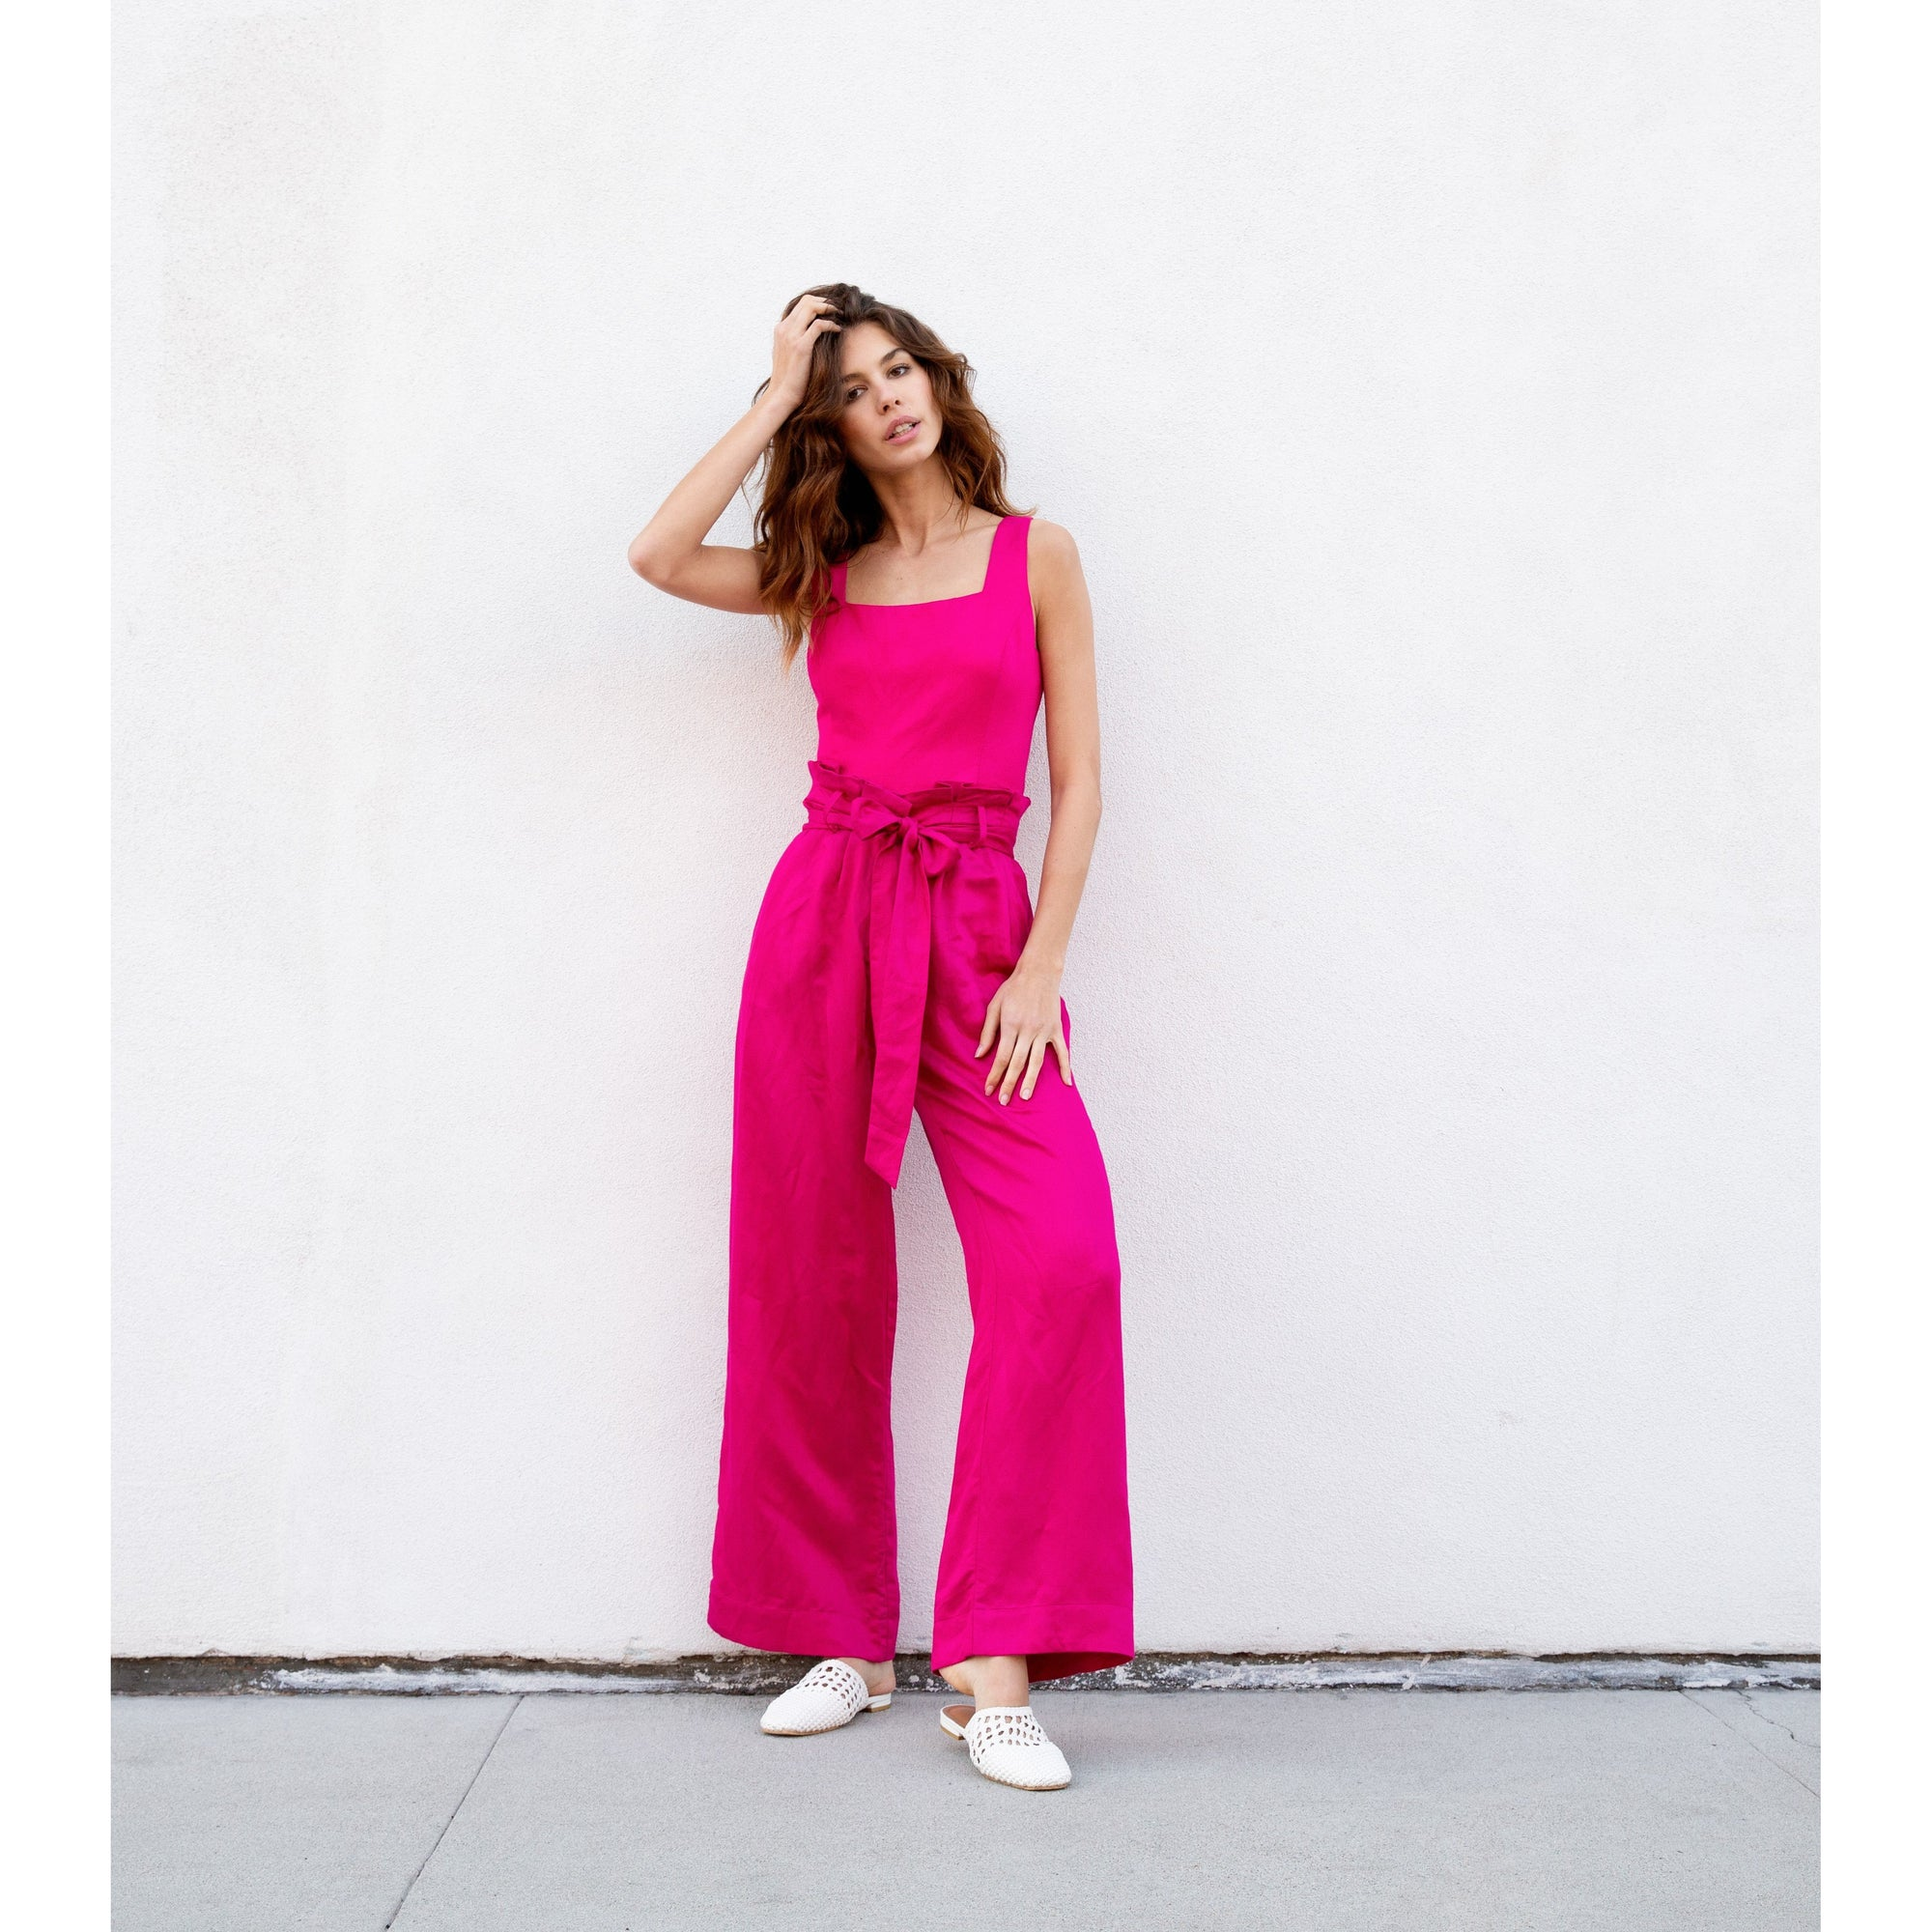 Bubblegum Pink Pants Set